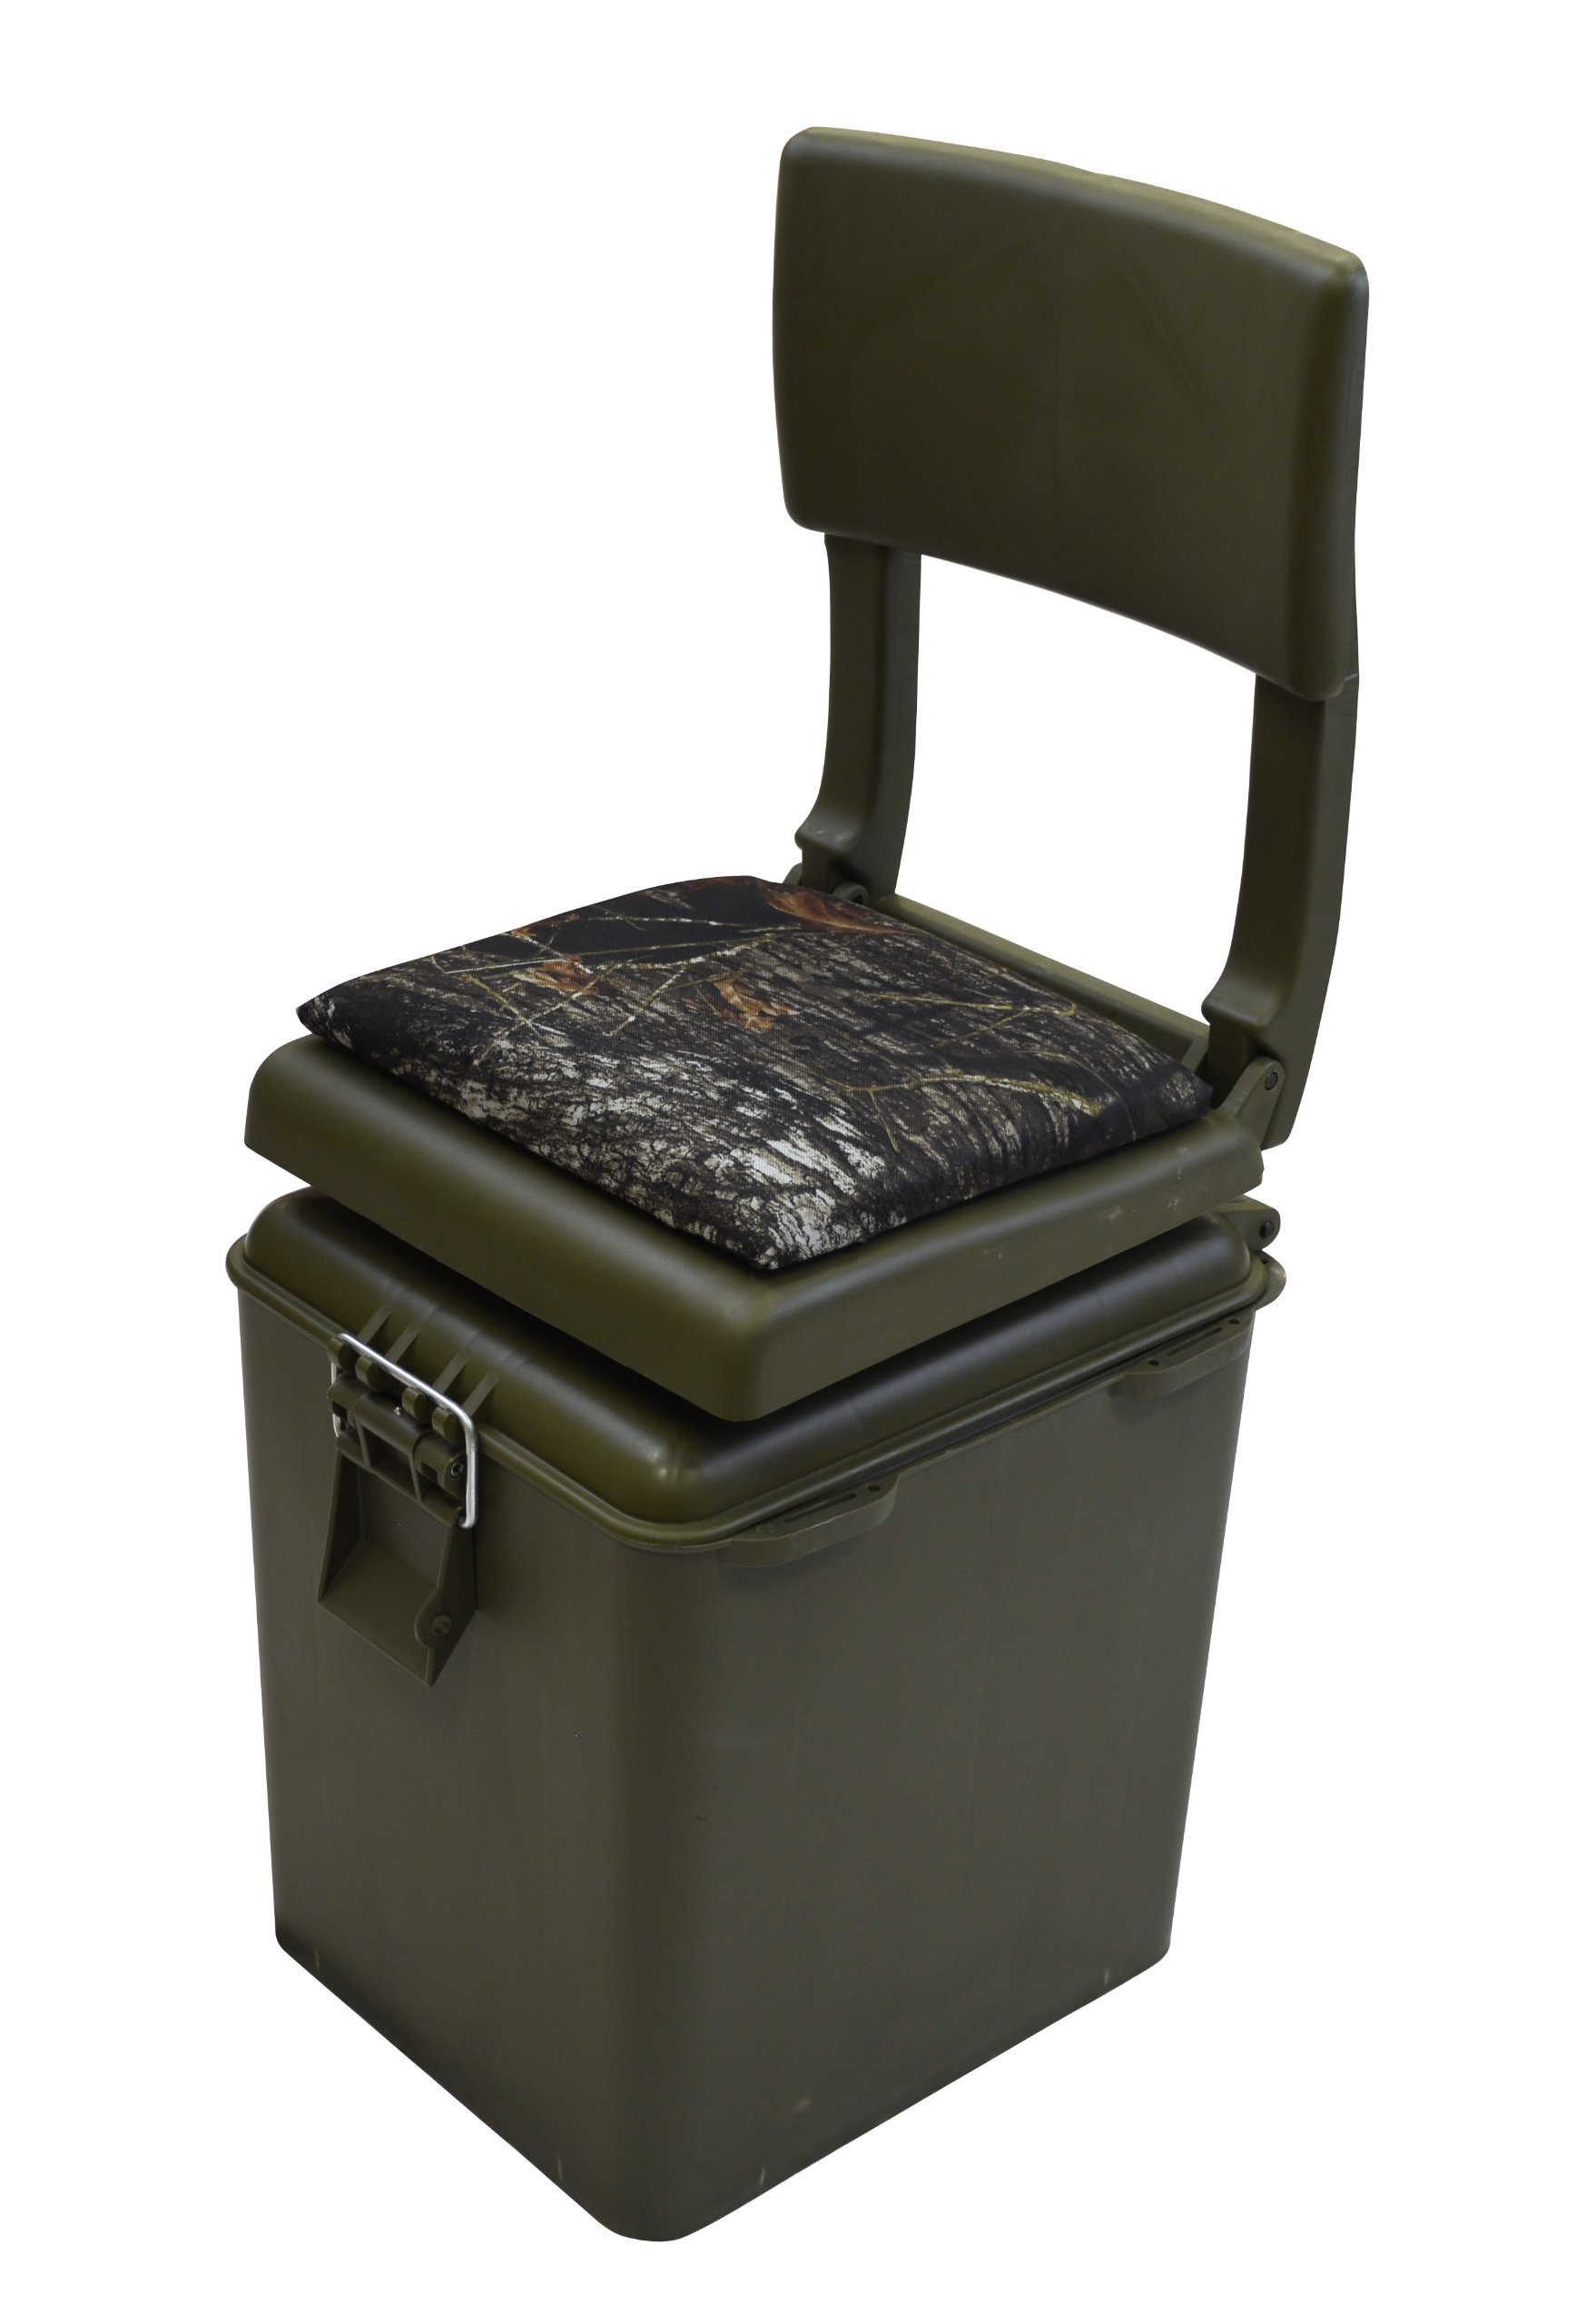 Wise Outdoors Super Sport Hunting Seat with Insulated Cooler, OD Green/Break-Up Camouflage